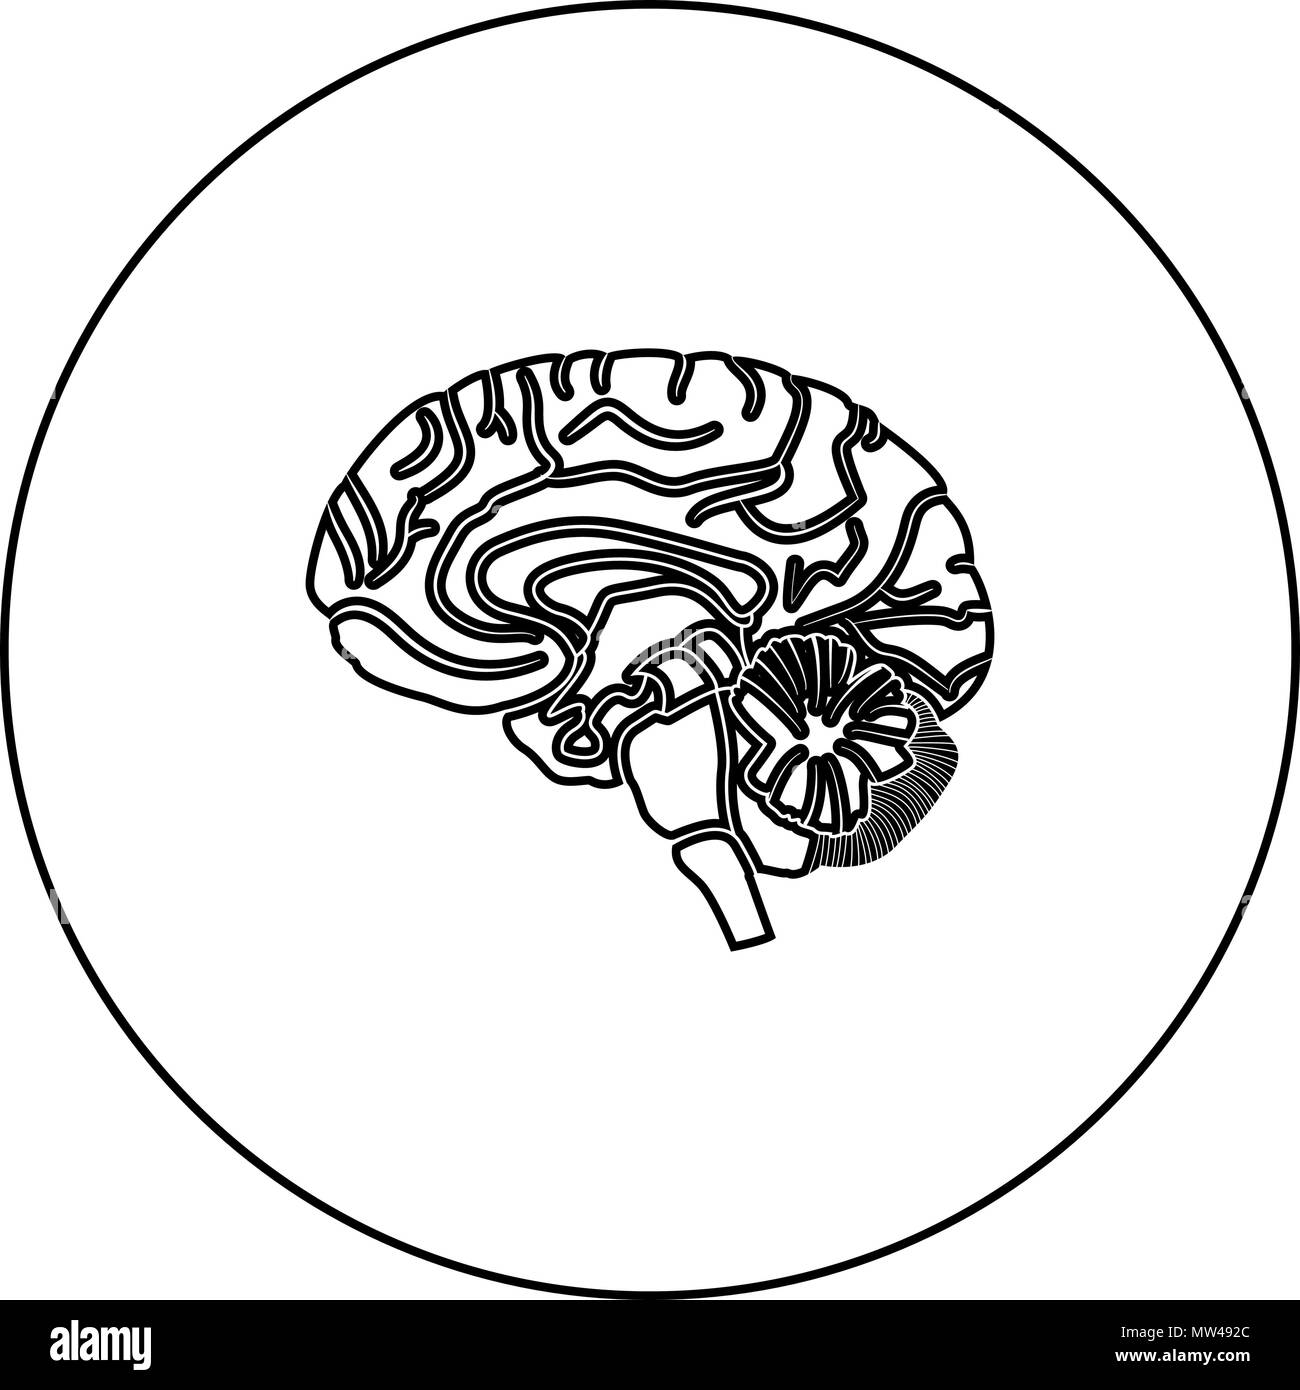 Brain black icon in circle outline vector I isolated - Stock Image